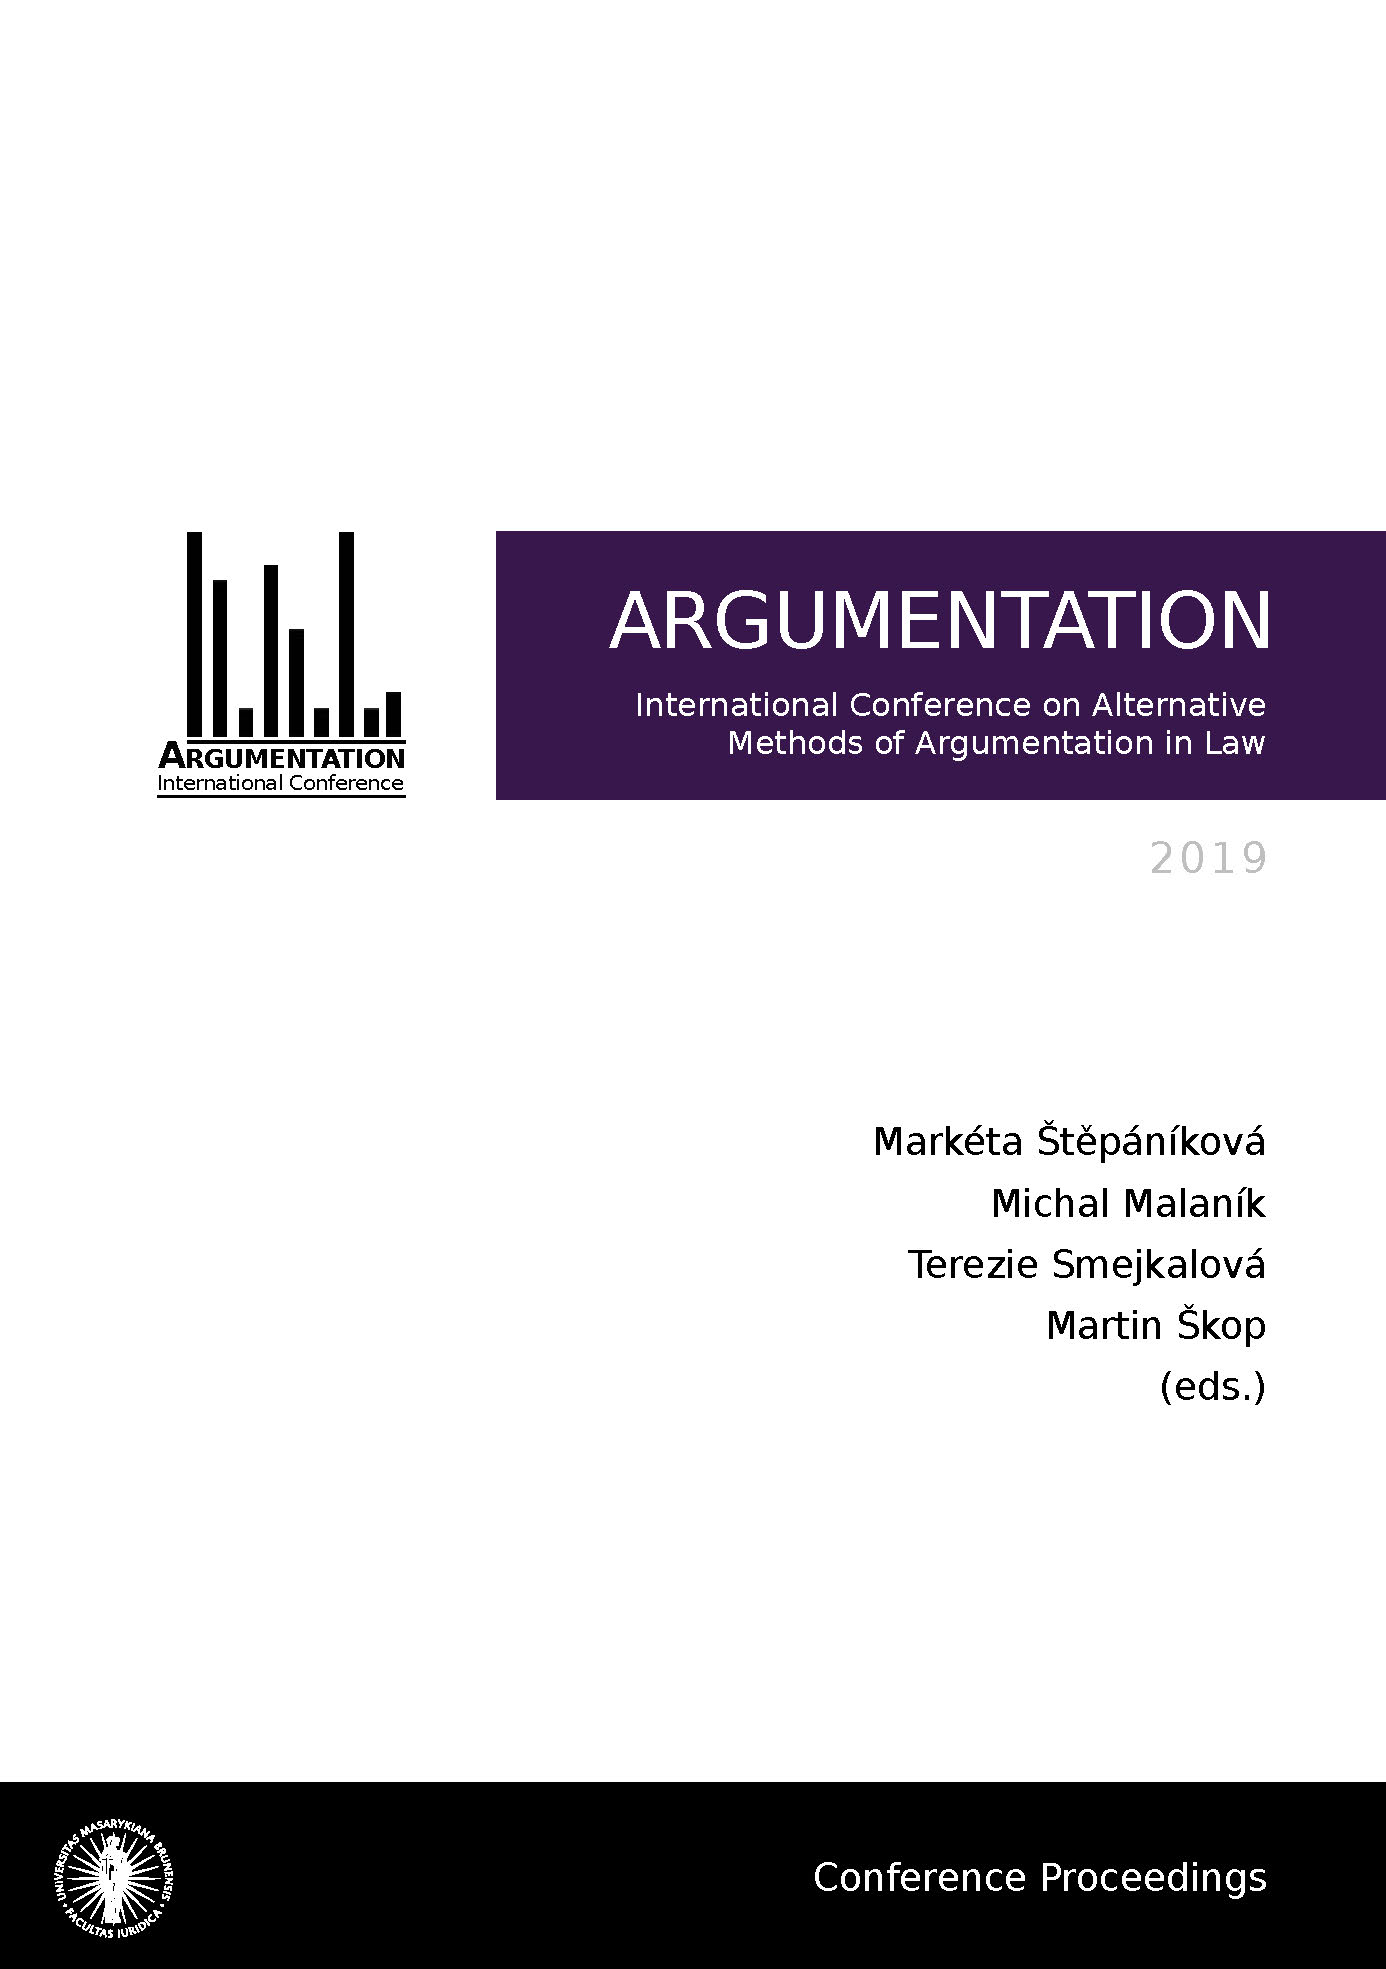 Obálka pro Argumentation 2019. International Conference on Alternative Methods of Argumentation in Law